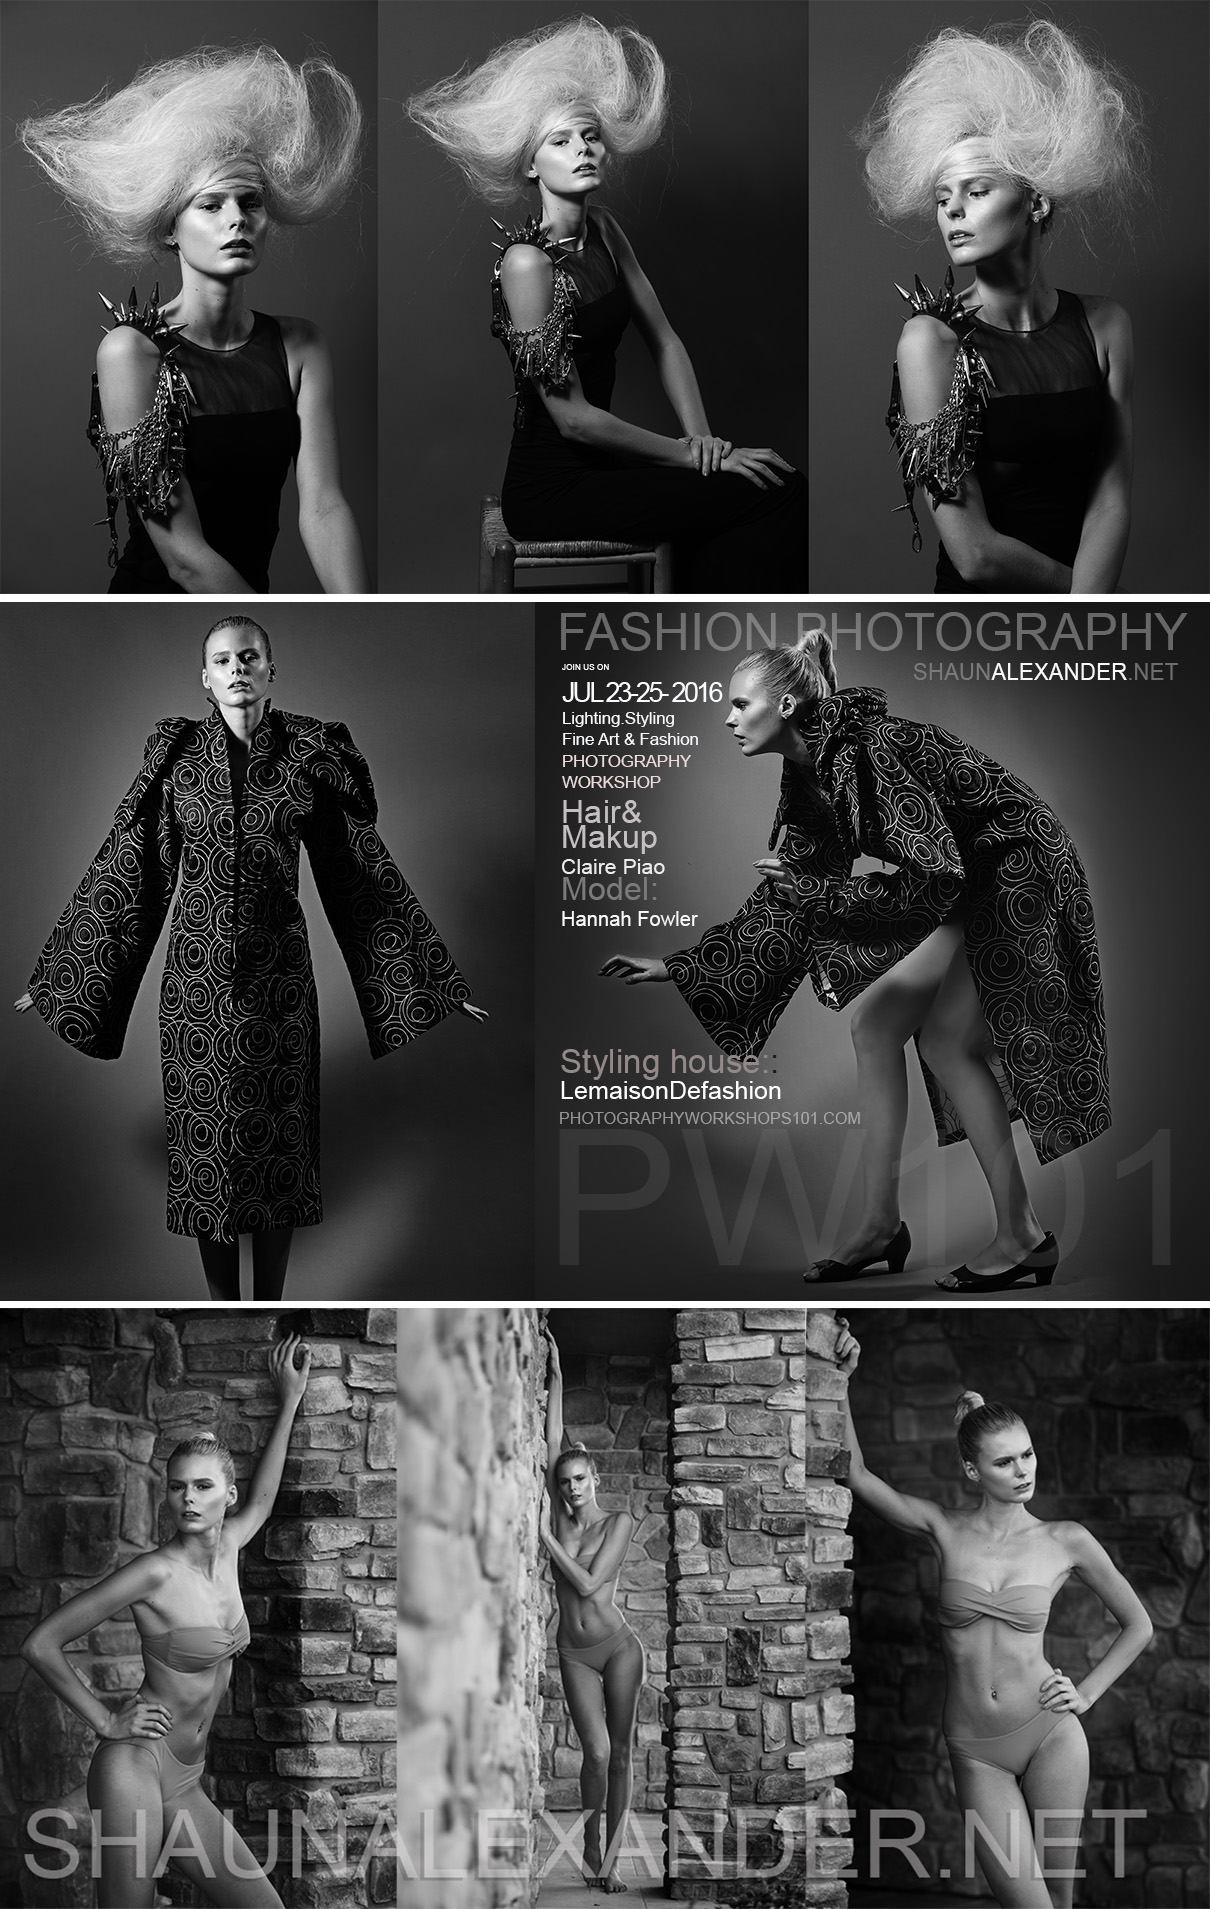 Group and Private Fashion Photography Workshops in Los Angeles by Top Fashion Photographer Shaun Alexander specialized in fashion, advertising, beauty, catalog, product and digital photography. Introduction to photography lighting, styling, model posing, directing, bossiness of photography and much more.